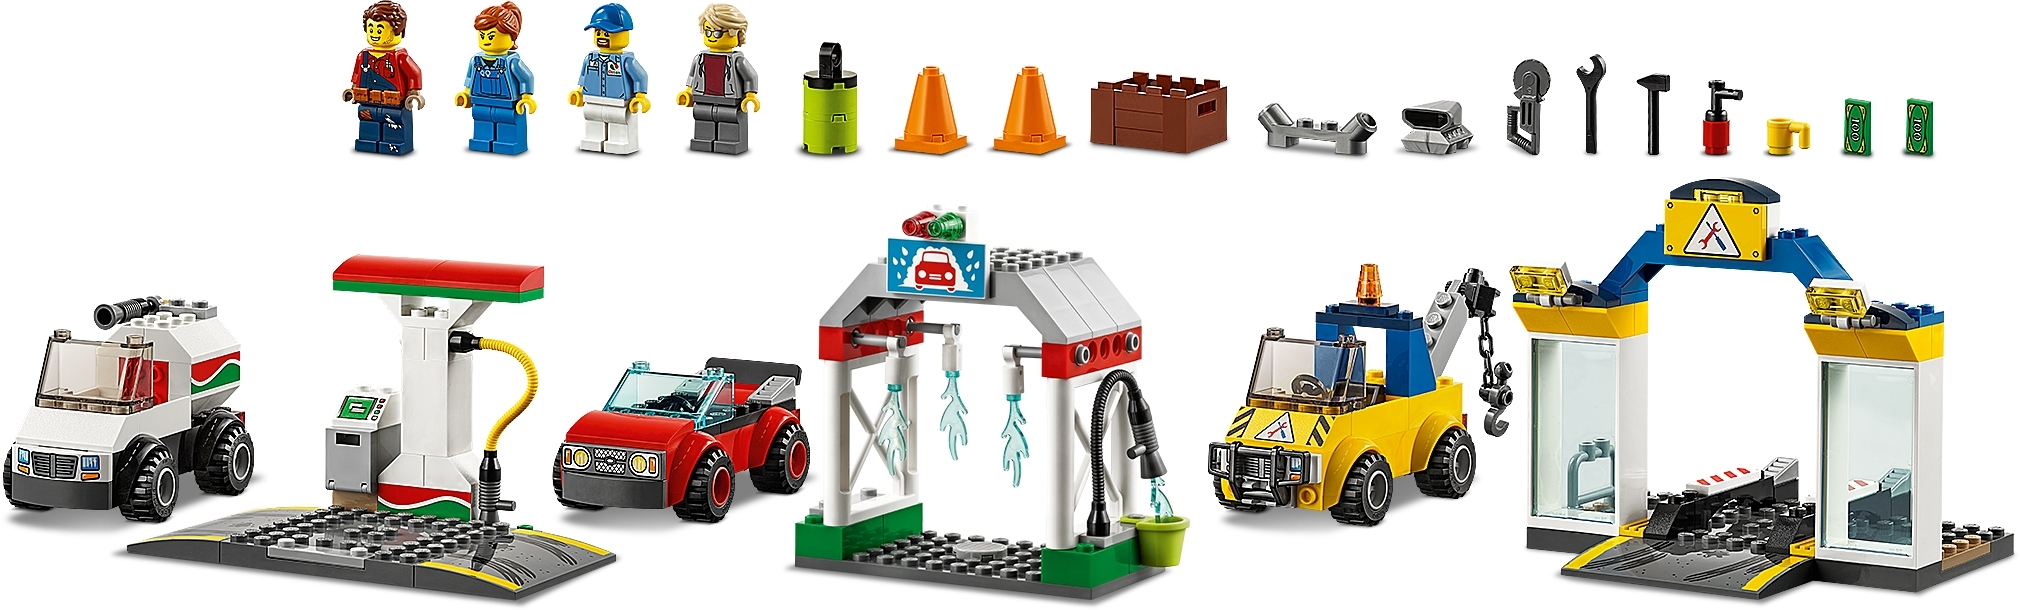 New Toy Garage Center 60232 Brick LEGO® City